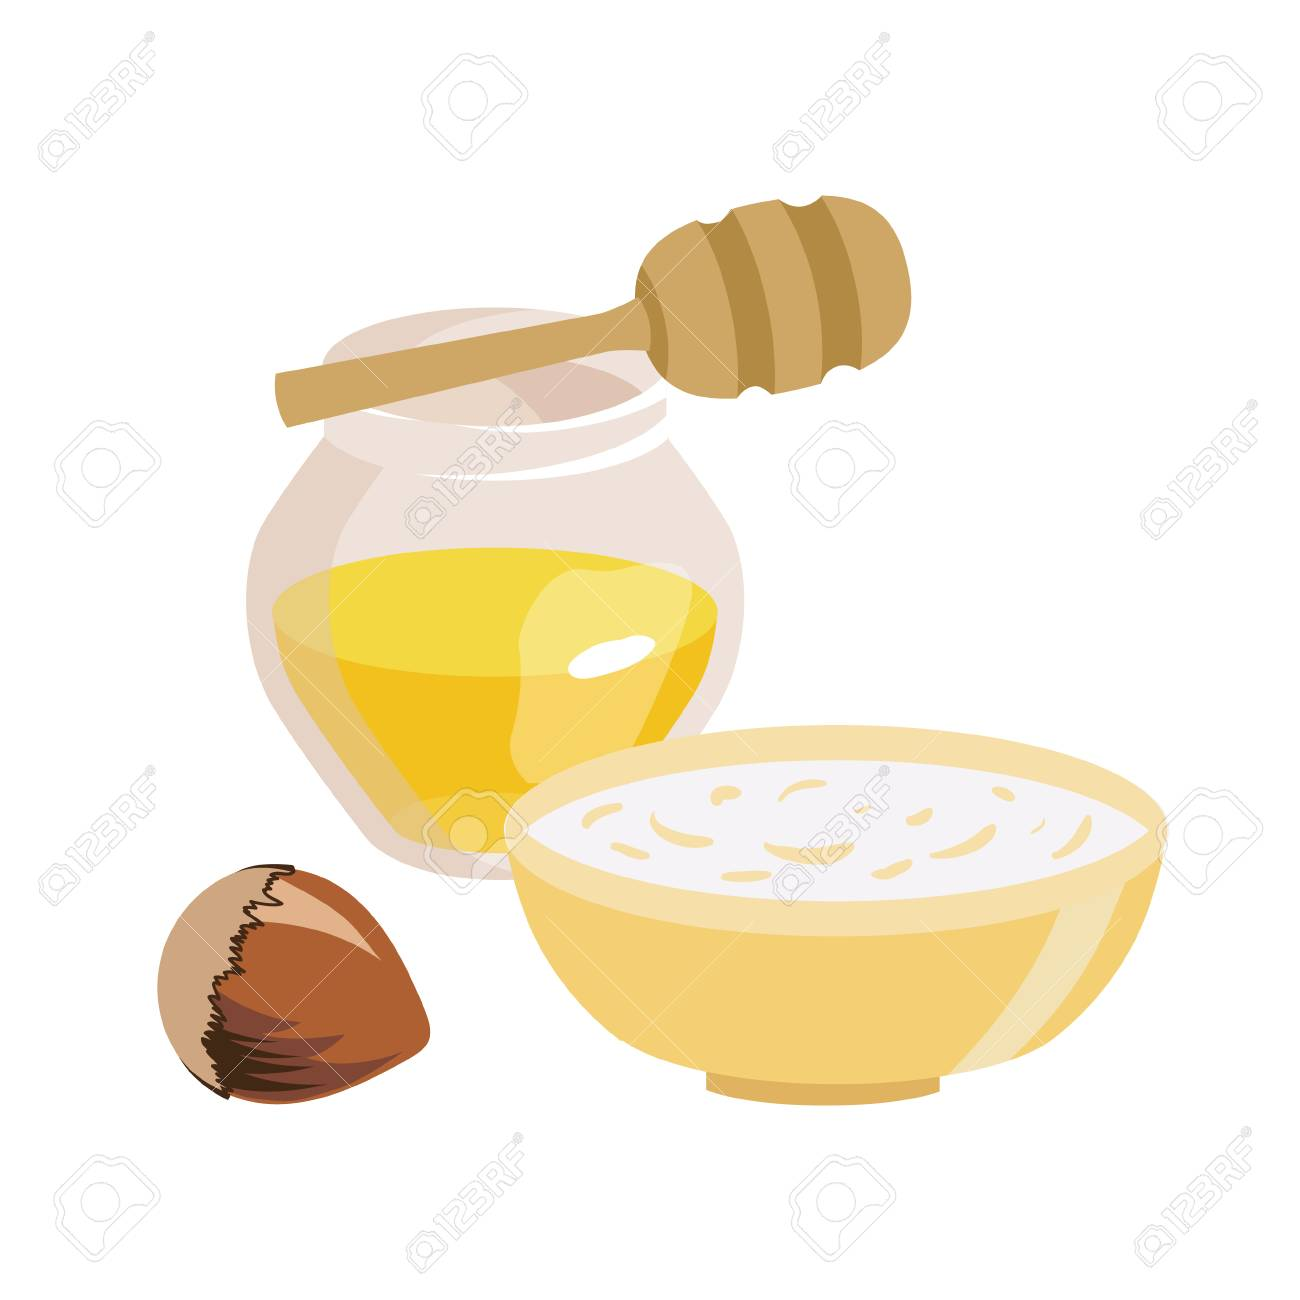 Series of icons for the Easter theme. Dietary food. Food for Lent time. Transparent jar with honey. A bowl of oatmeal. Hazelnut. Wooden stick for honey. Isolated vector illustration - 116196029